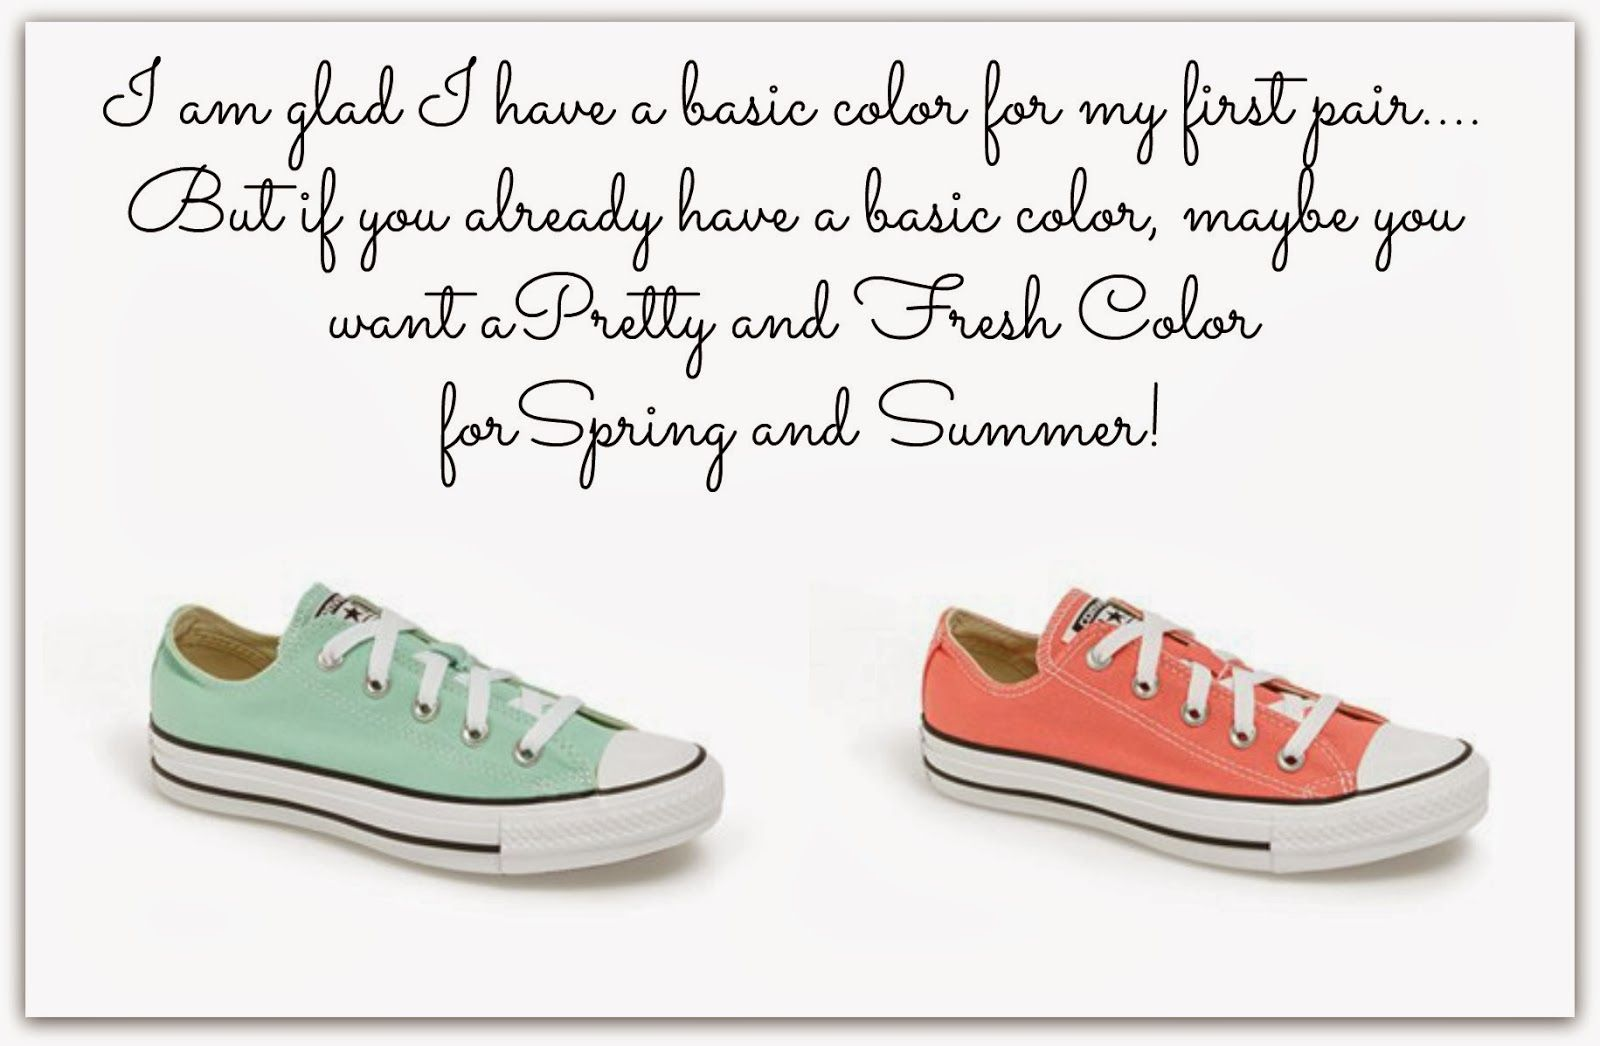 awesome converse colors for spring and summer